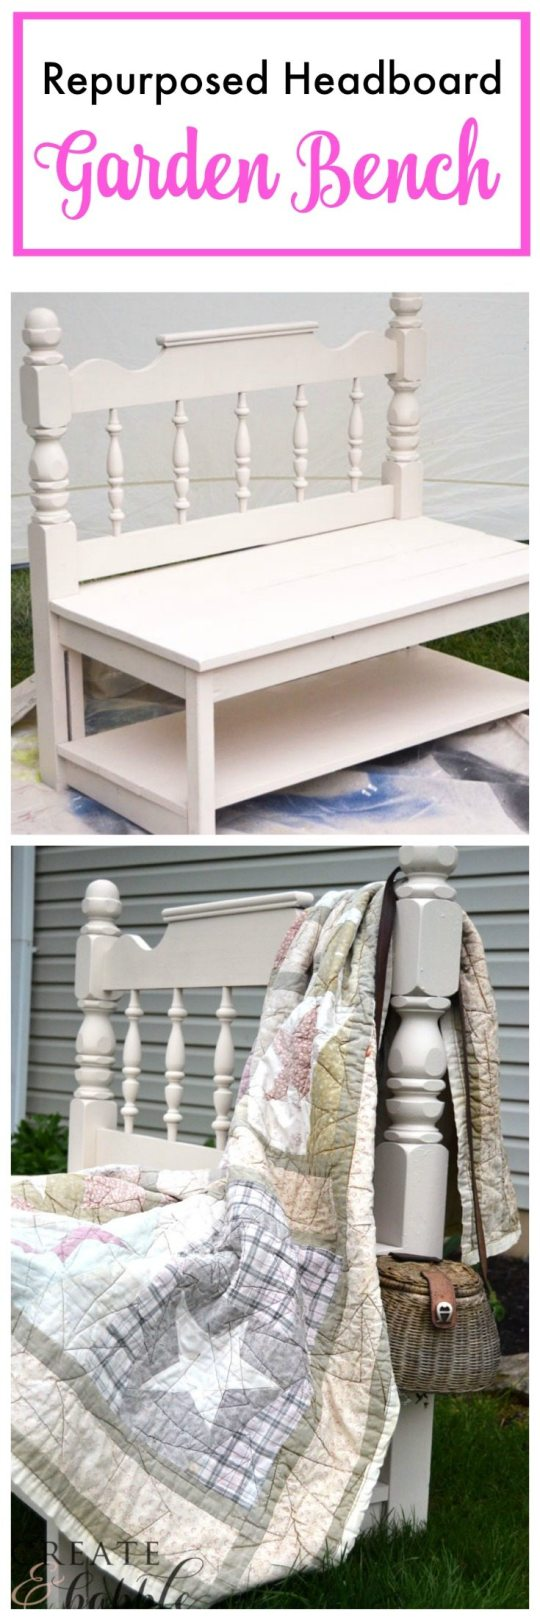 repurposed-headboard-into-garden-bench-1